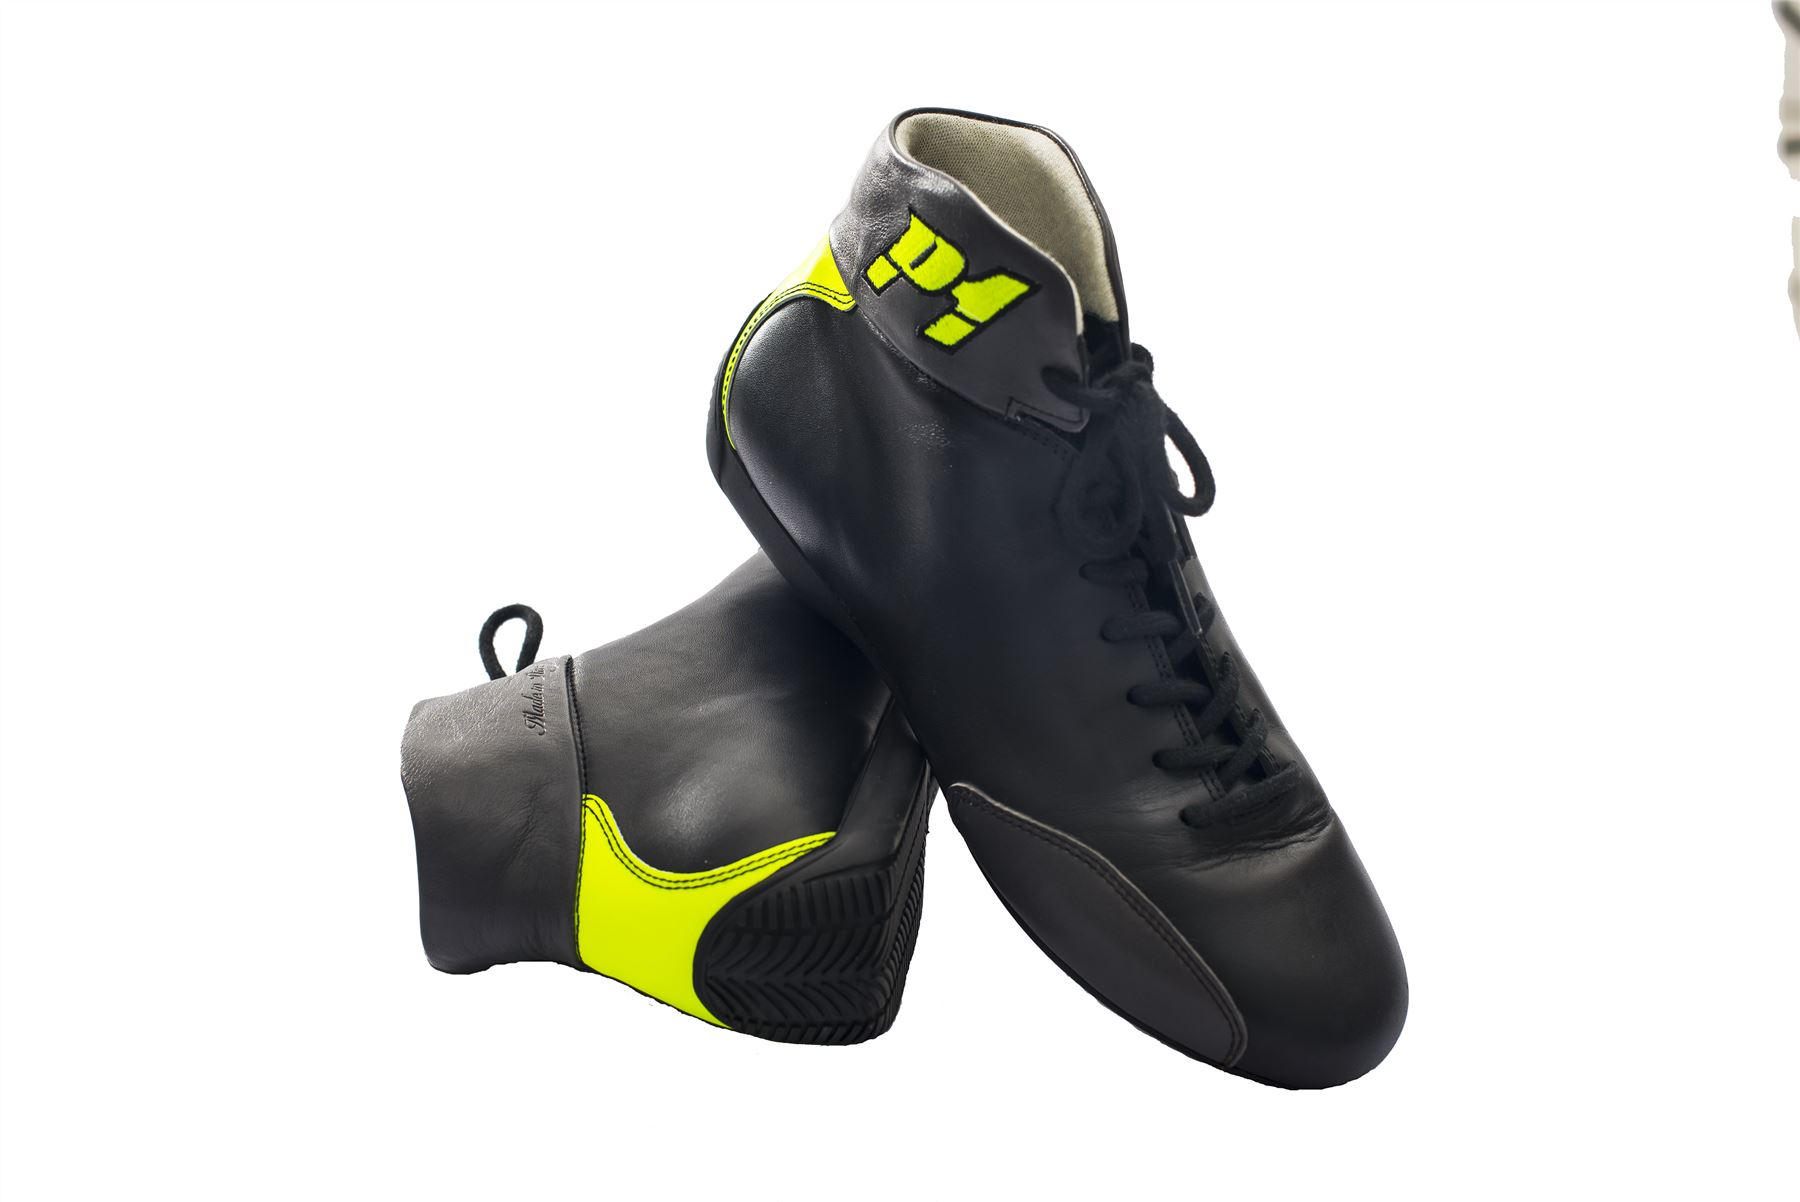 Indexbild 11 - P1 Racewear Monza FIA Approved Soft Leather Race, Rally Boots Black/Fluro